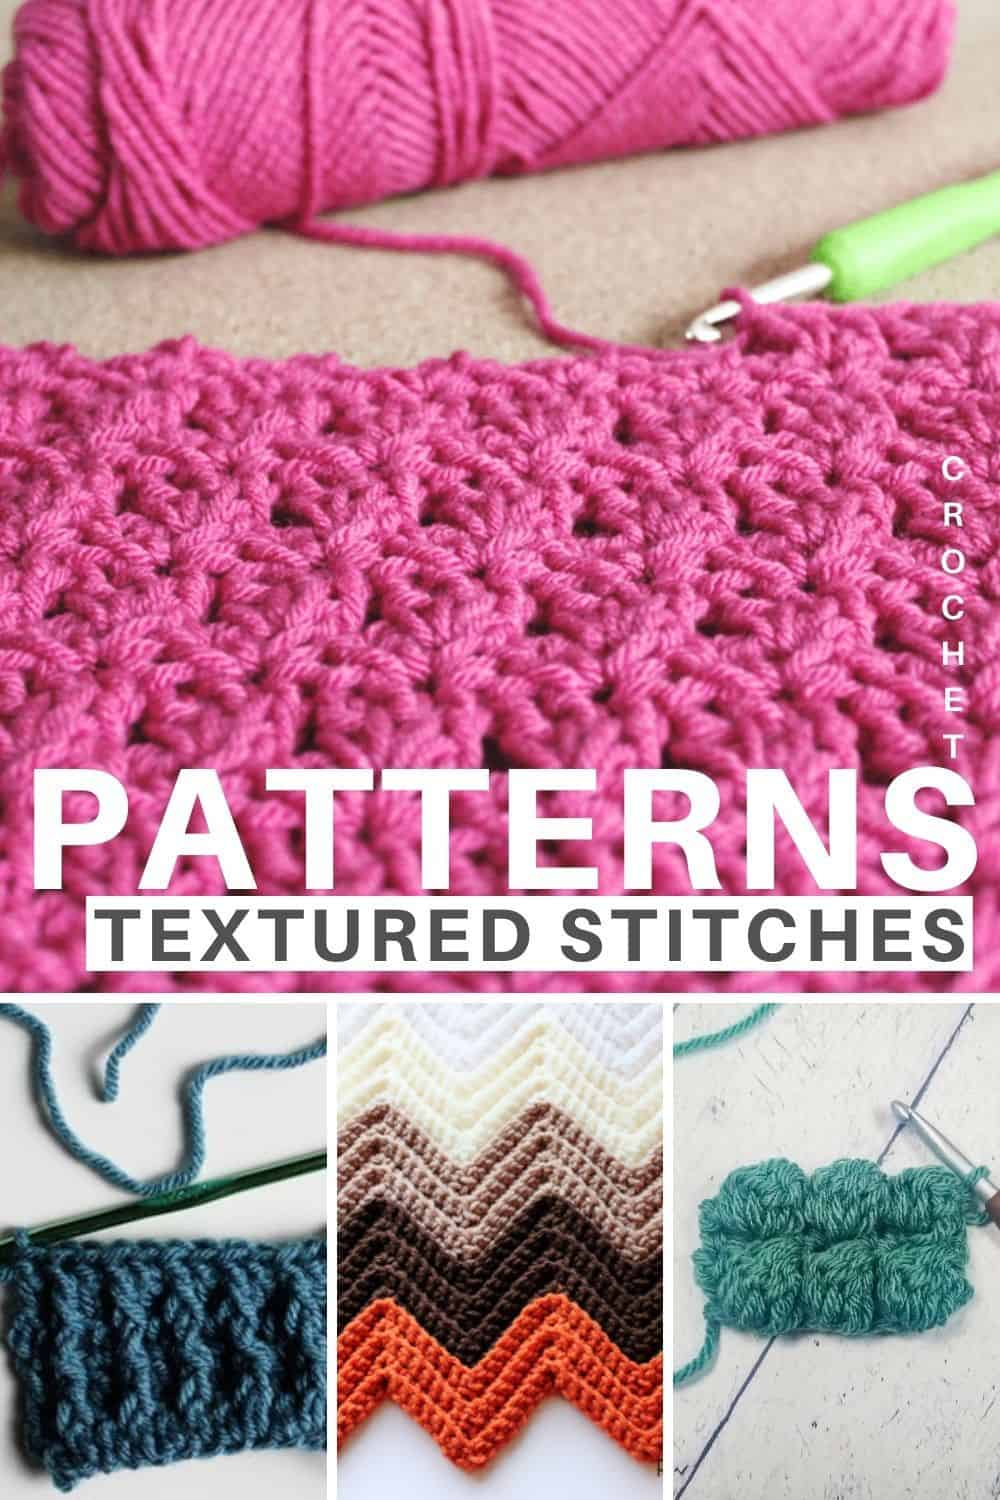 Textured Crochet Stitches for Patterns